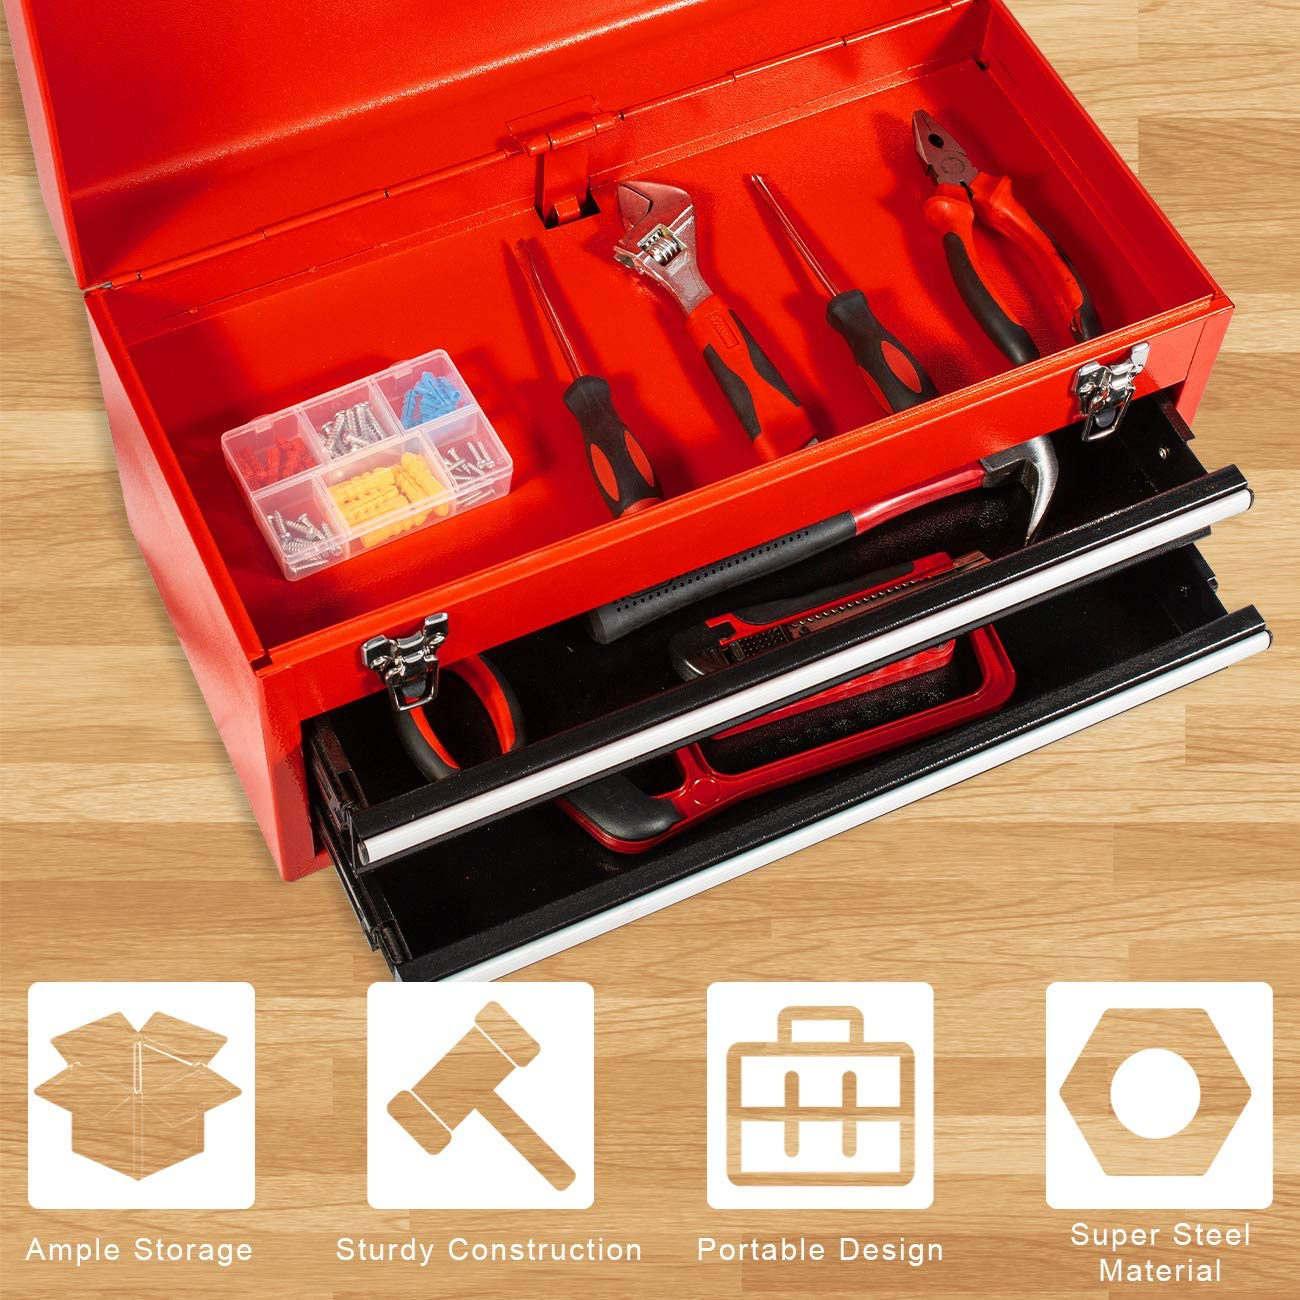 Black Eco Home Tool Box with 2-Drawer Tool Chest Metal Portable Tool Chest Steel Cabinet with Top Tray,Multifunctional Toolbox for Garage and Warehouse